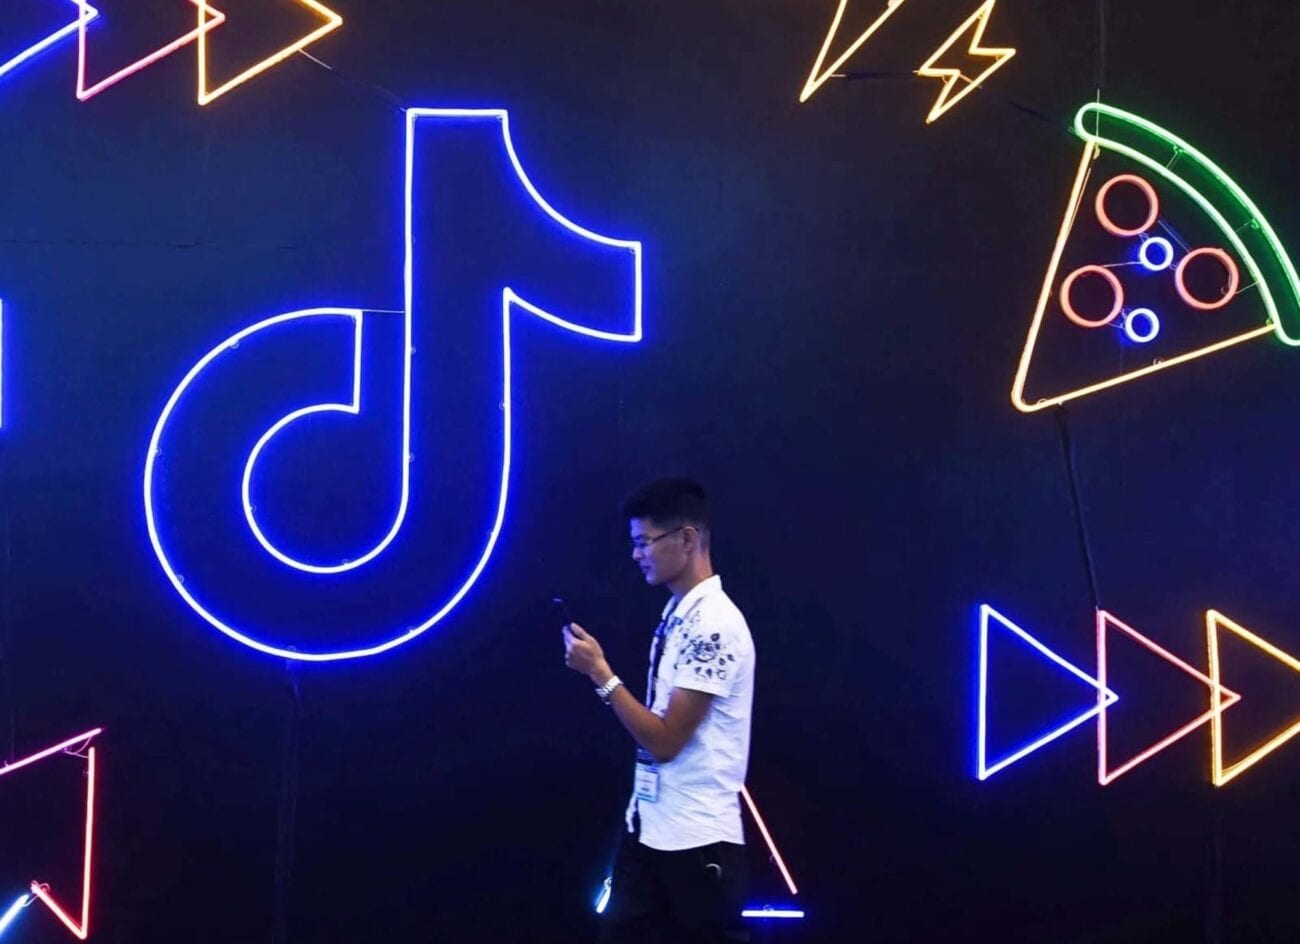 We spend everyday on social media, but is TikTok actually safe? Take a look at the latest lawsuit against TikTok and their outdated guidelines.